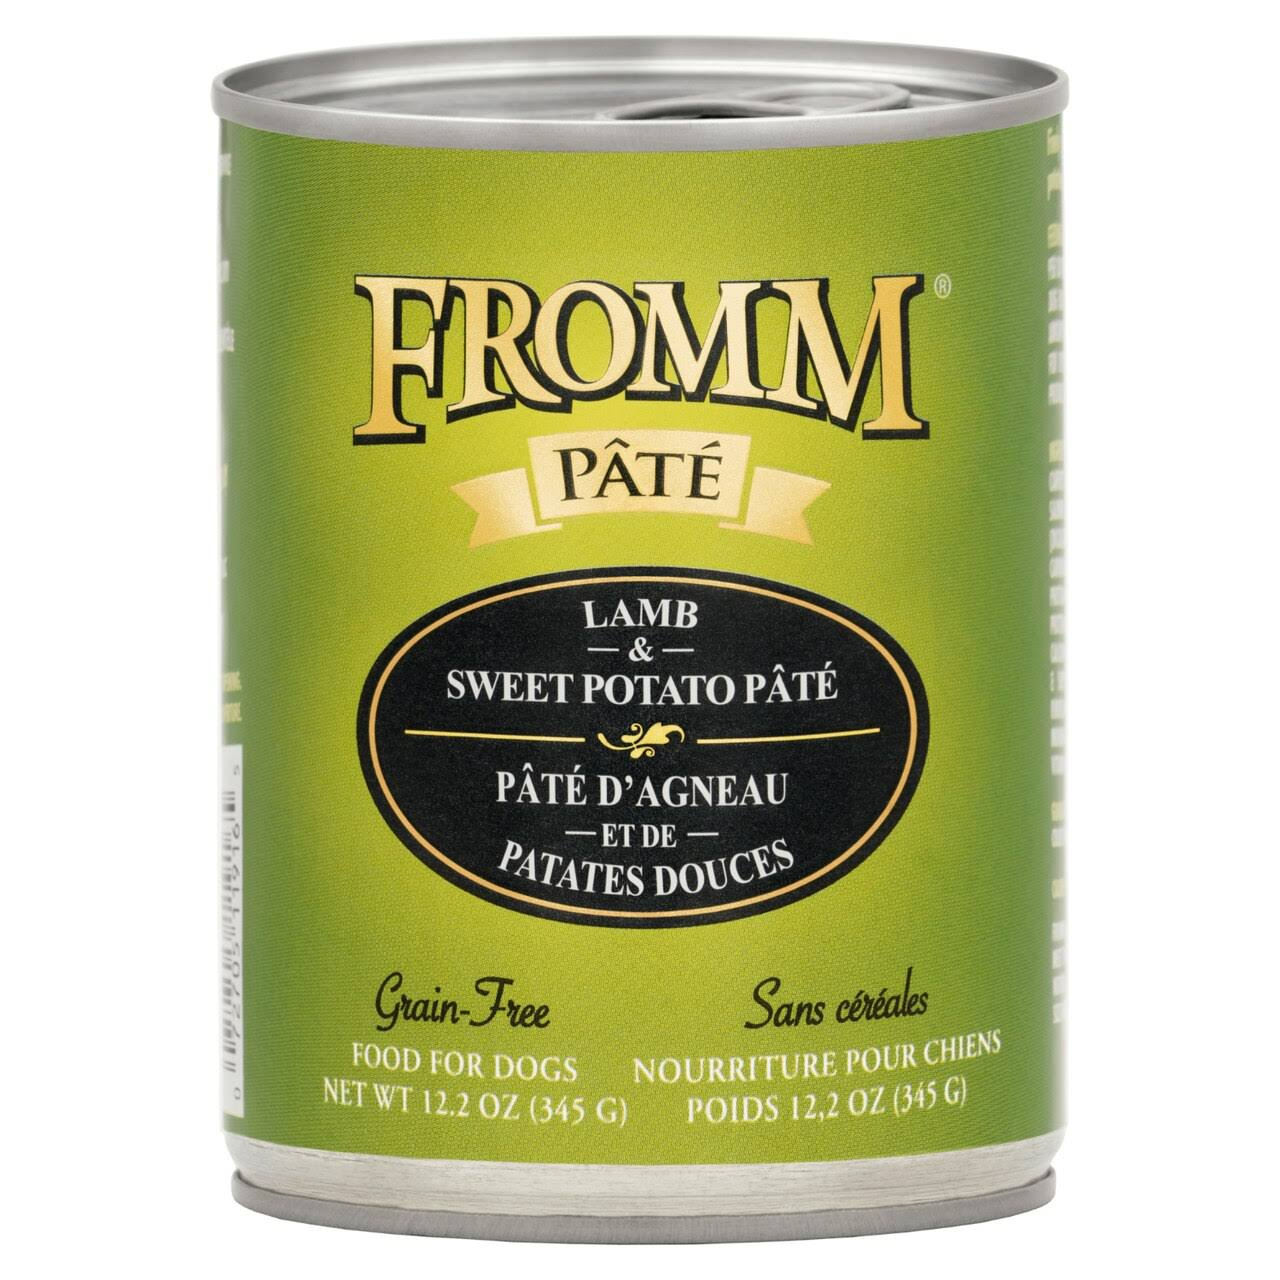 Fromm Lamb & Sweet Potato Pate Canned Dog Food 12.2 oz